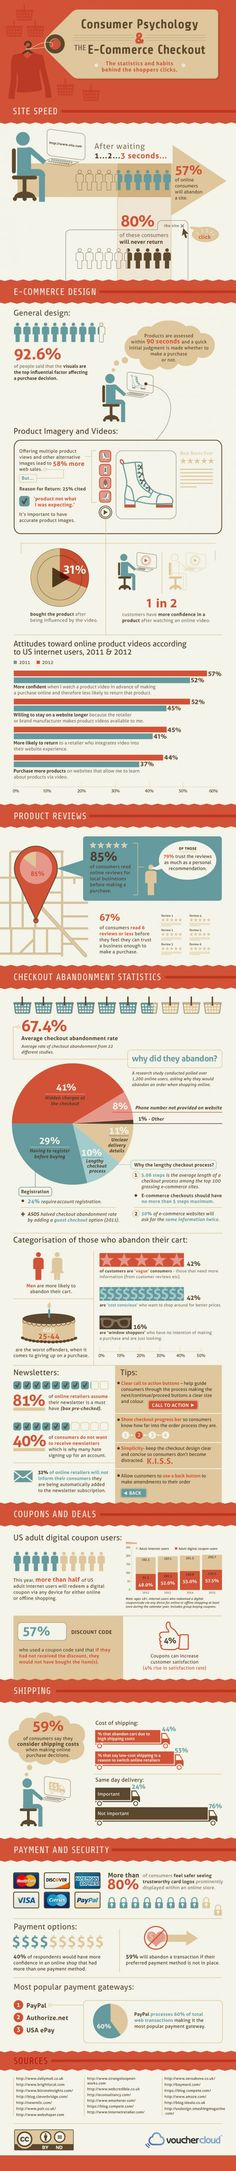 Consumer Psychology & The commerce Checkout